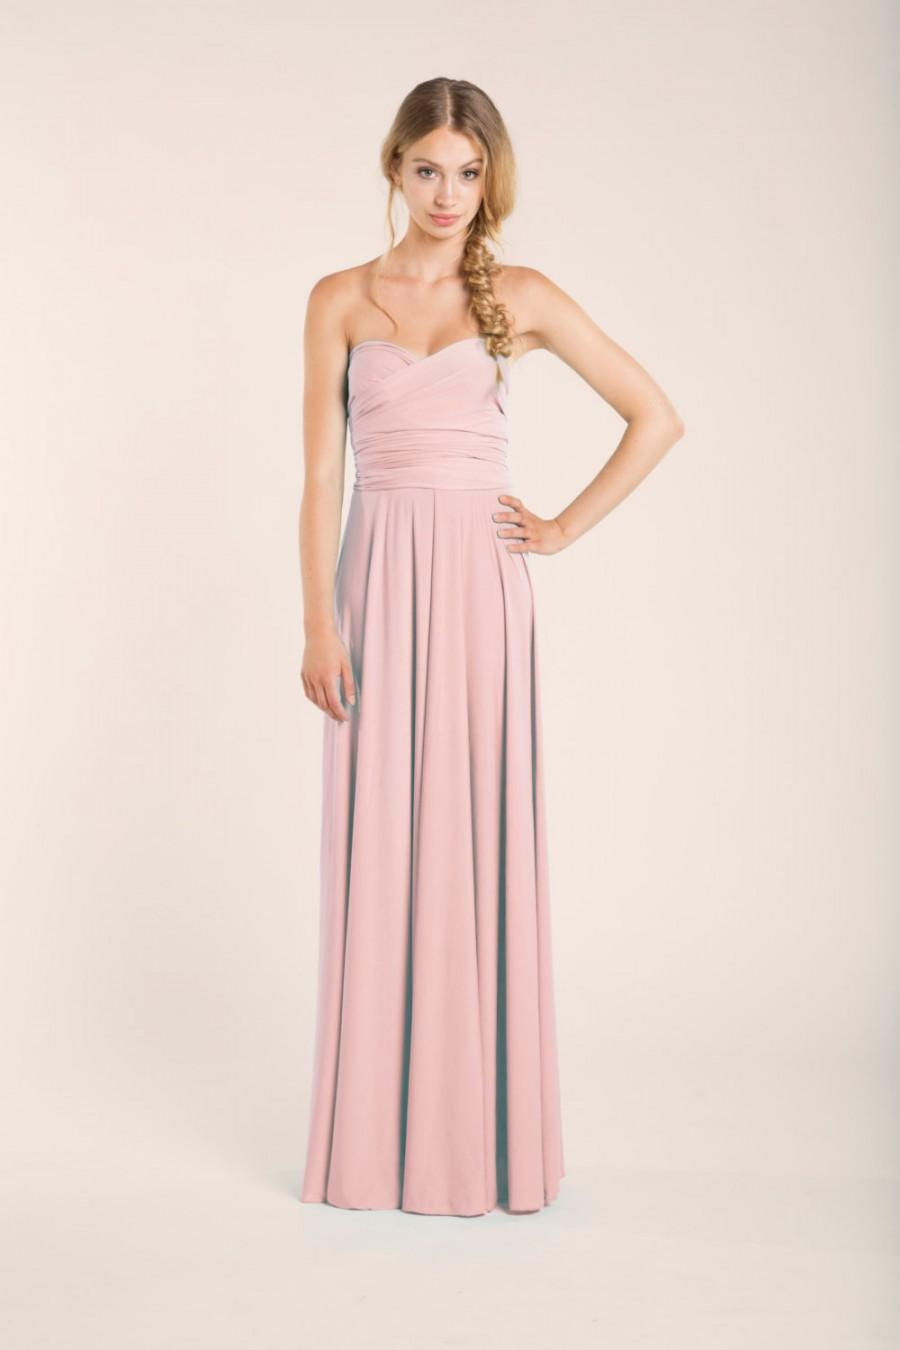 Rose Quartz Infinity Dress Long Bridesmaids Blush Pink Dresses Light Wedding